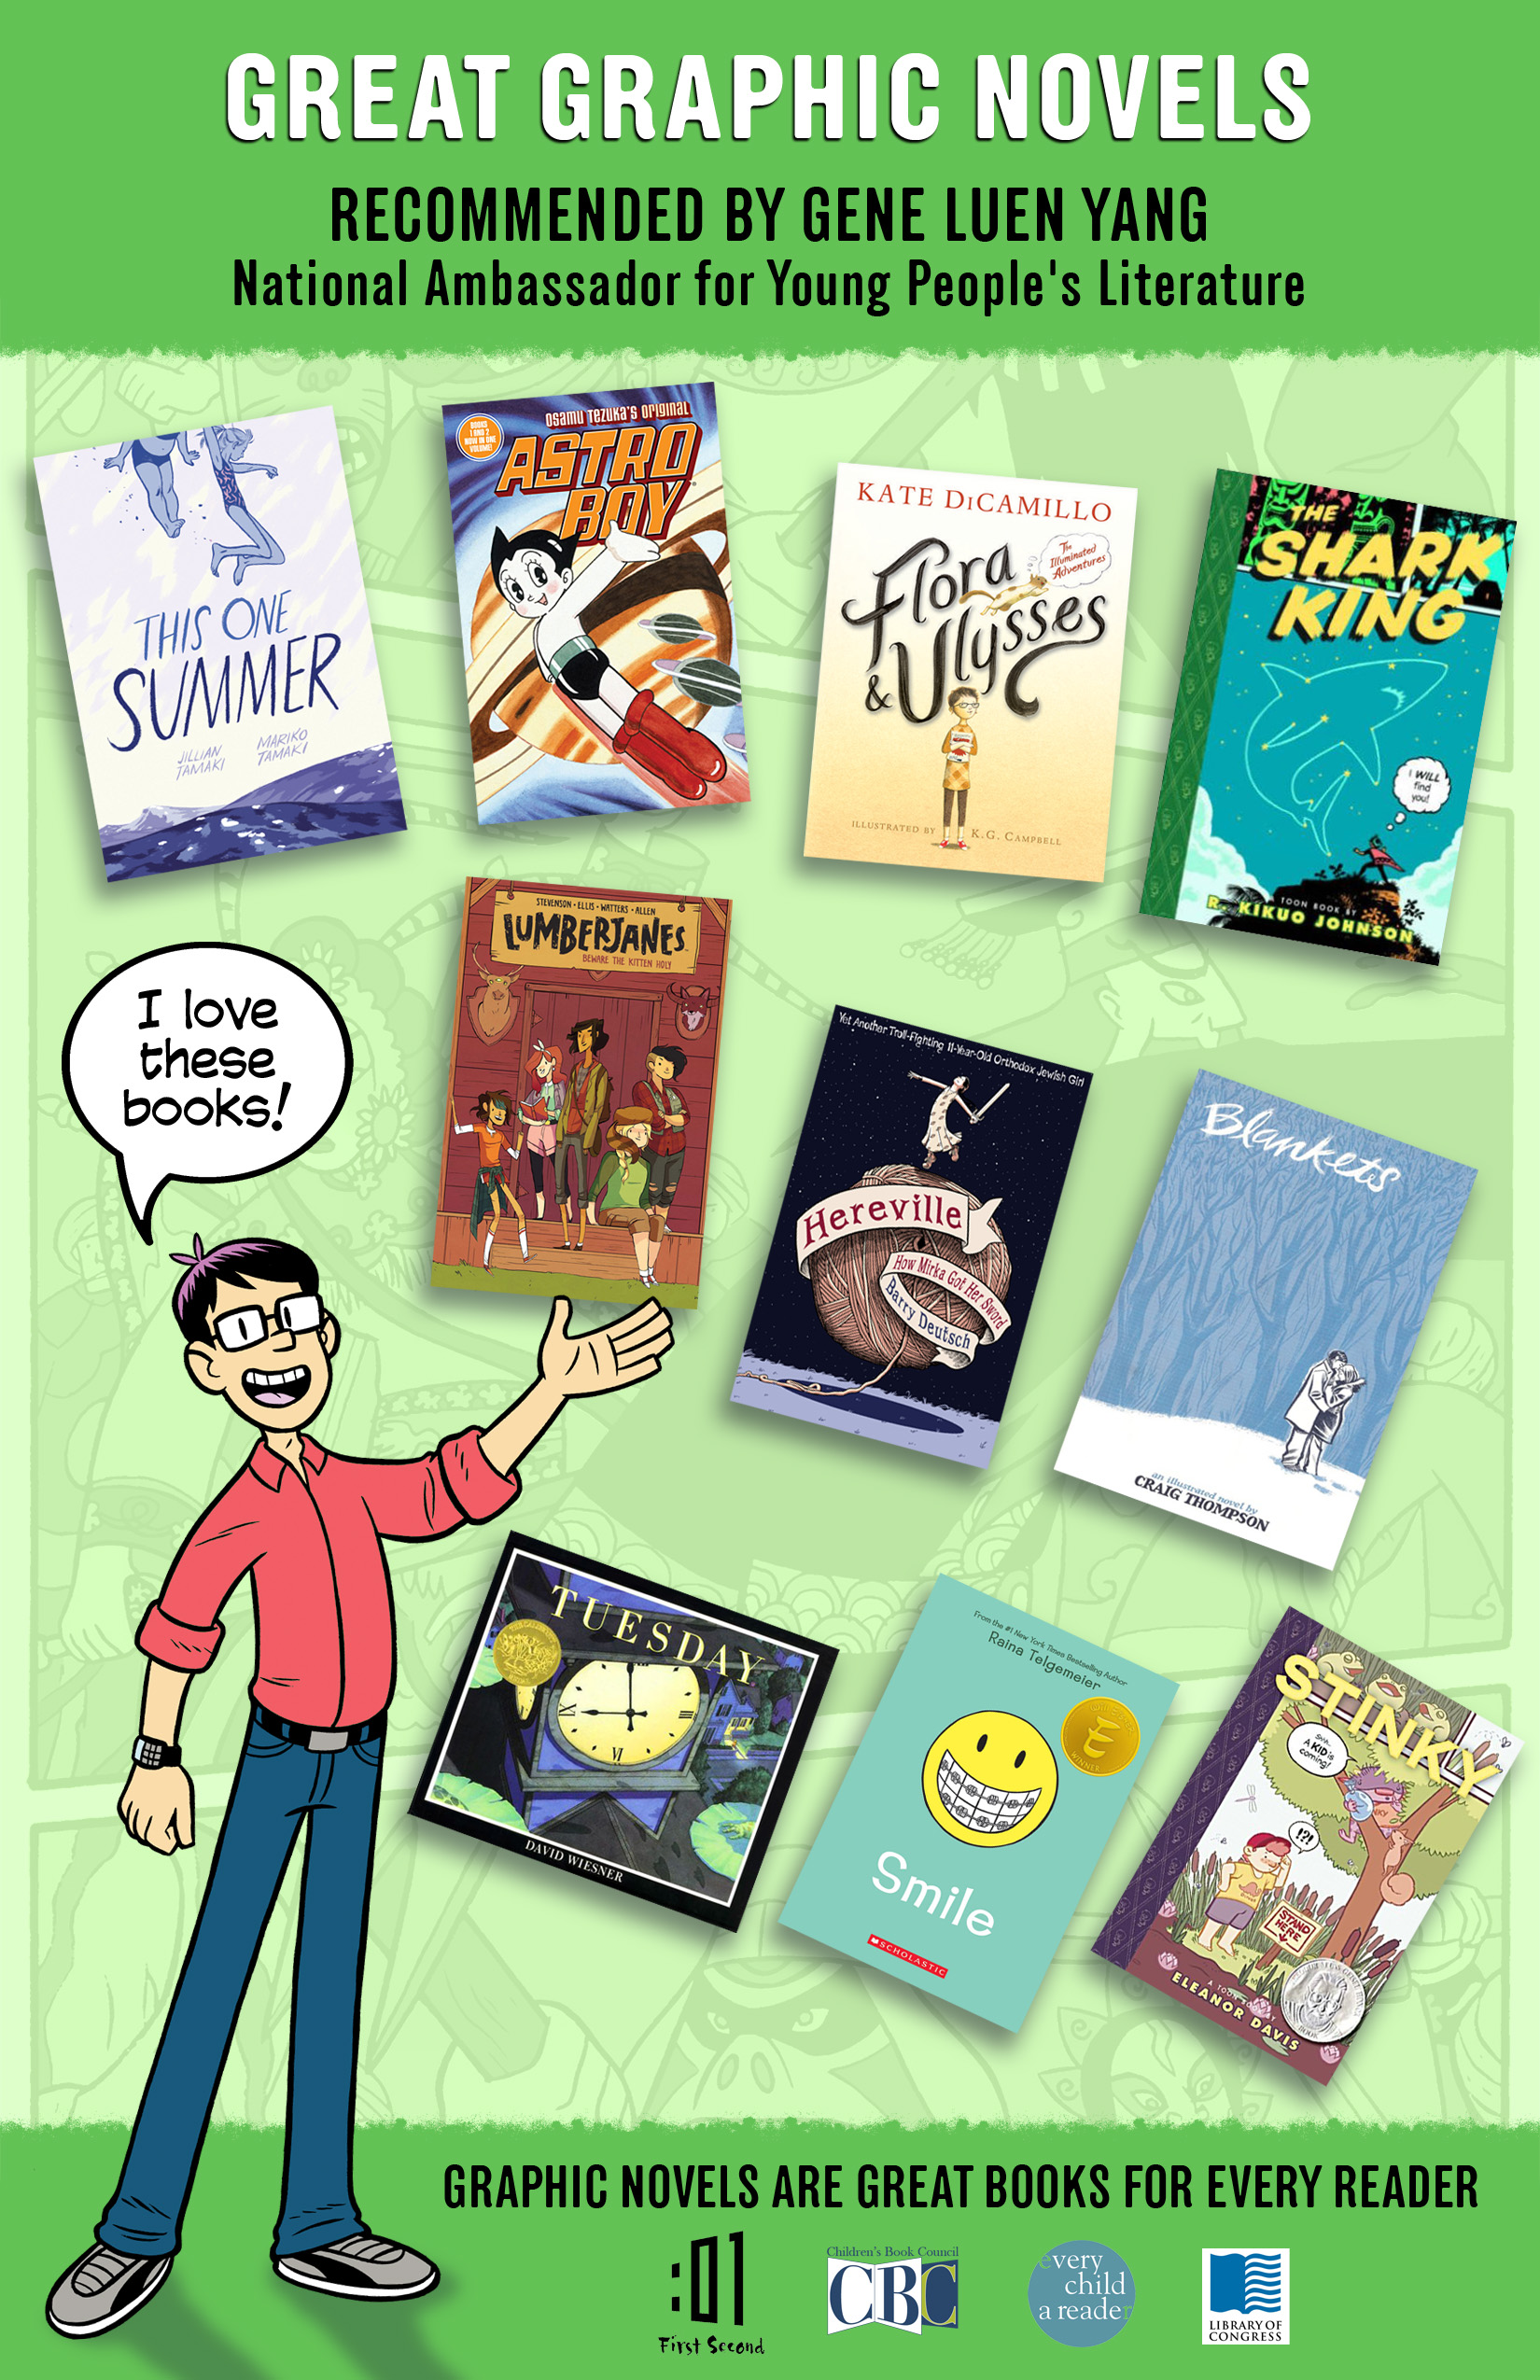 National Ambassador for Young People's Literature Gene Luen Yang Names Recommended Reading List